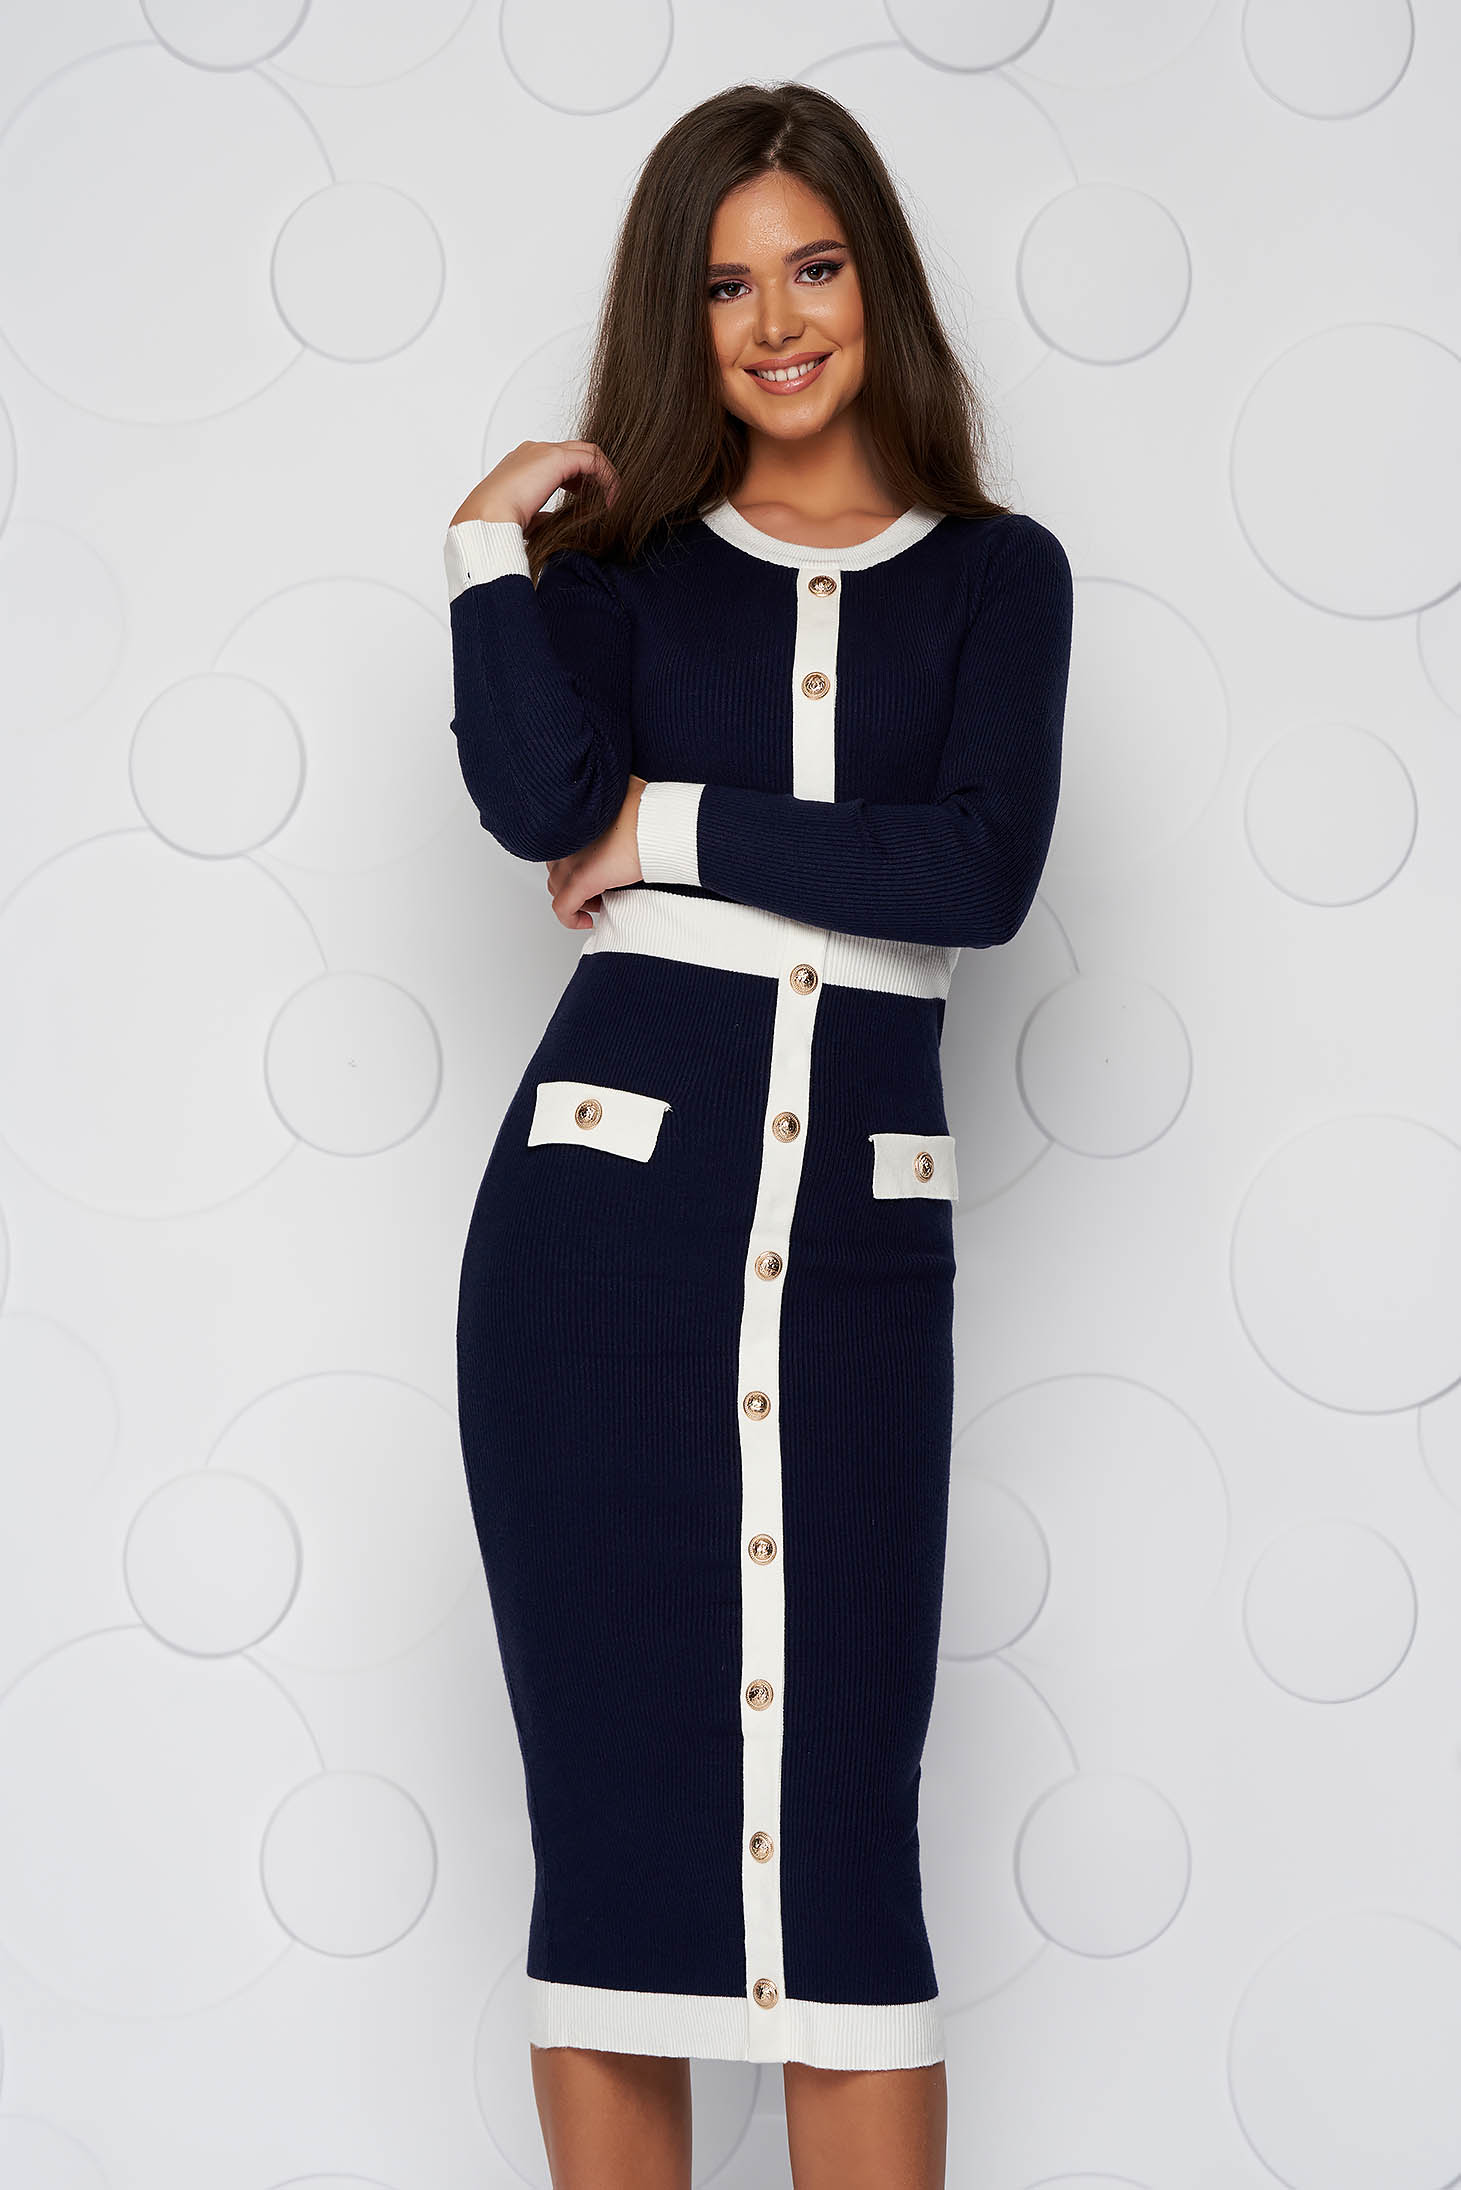 Darkblue dress with faux pockets pencil with button accessories knitted fabric midi